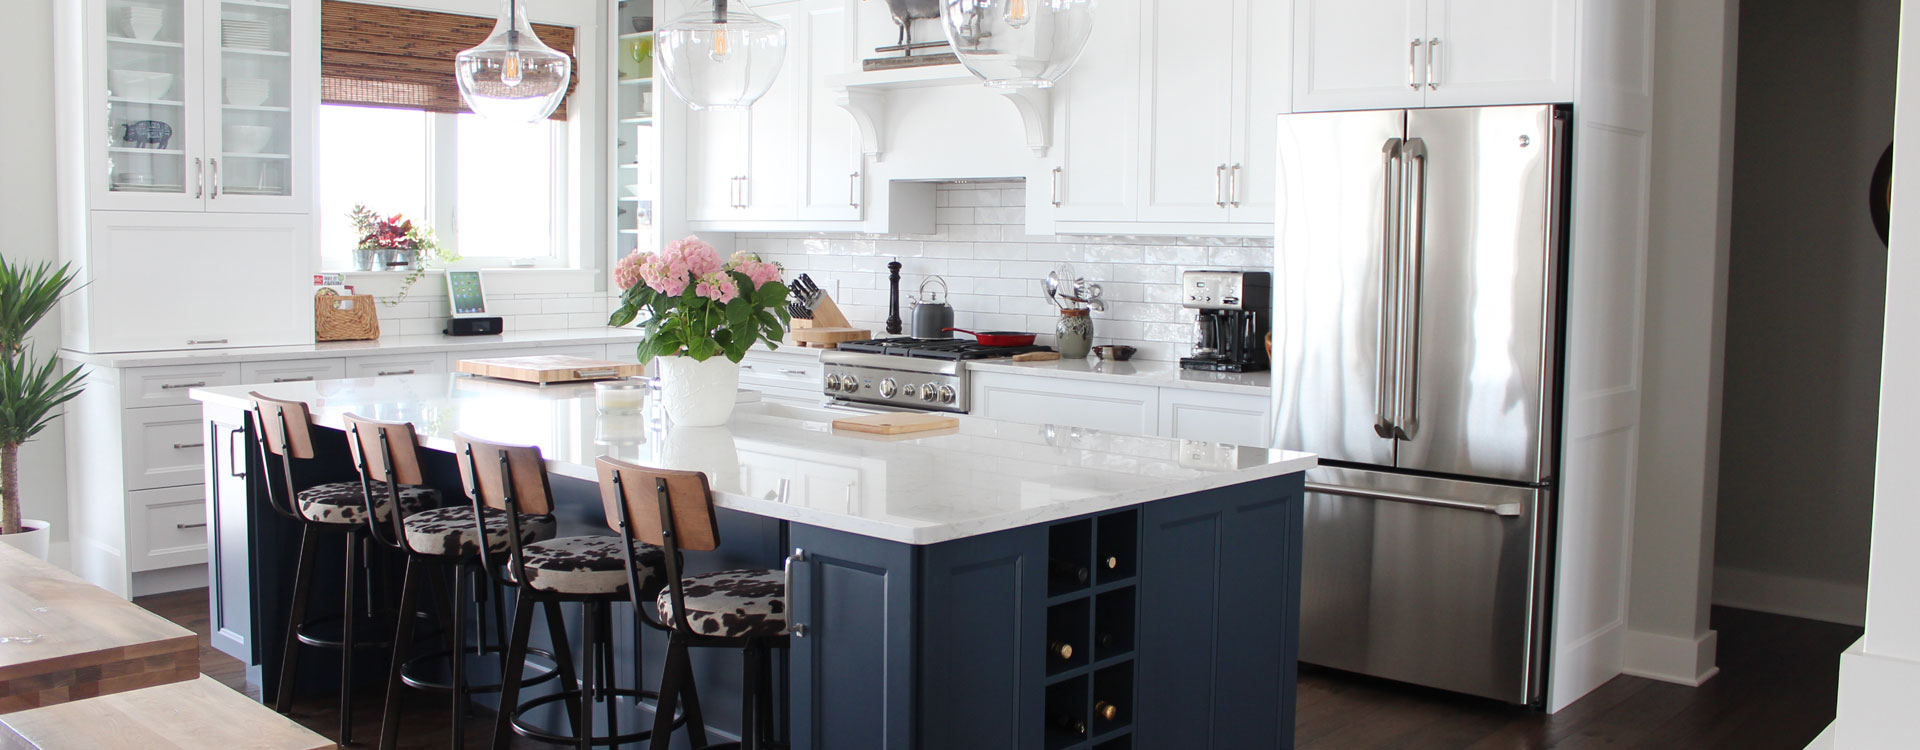 Hawthorne Kitchens - Stone Countertops